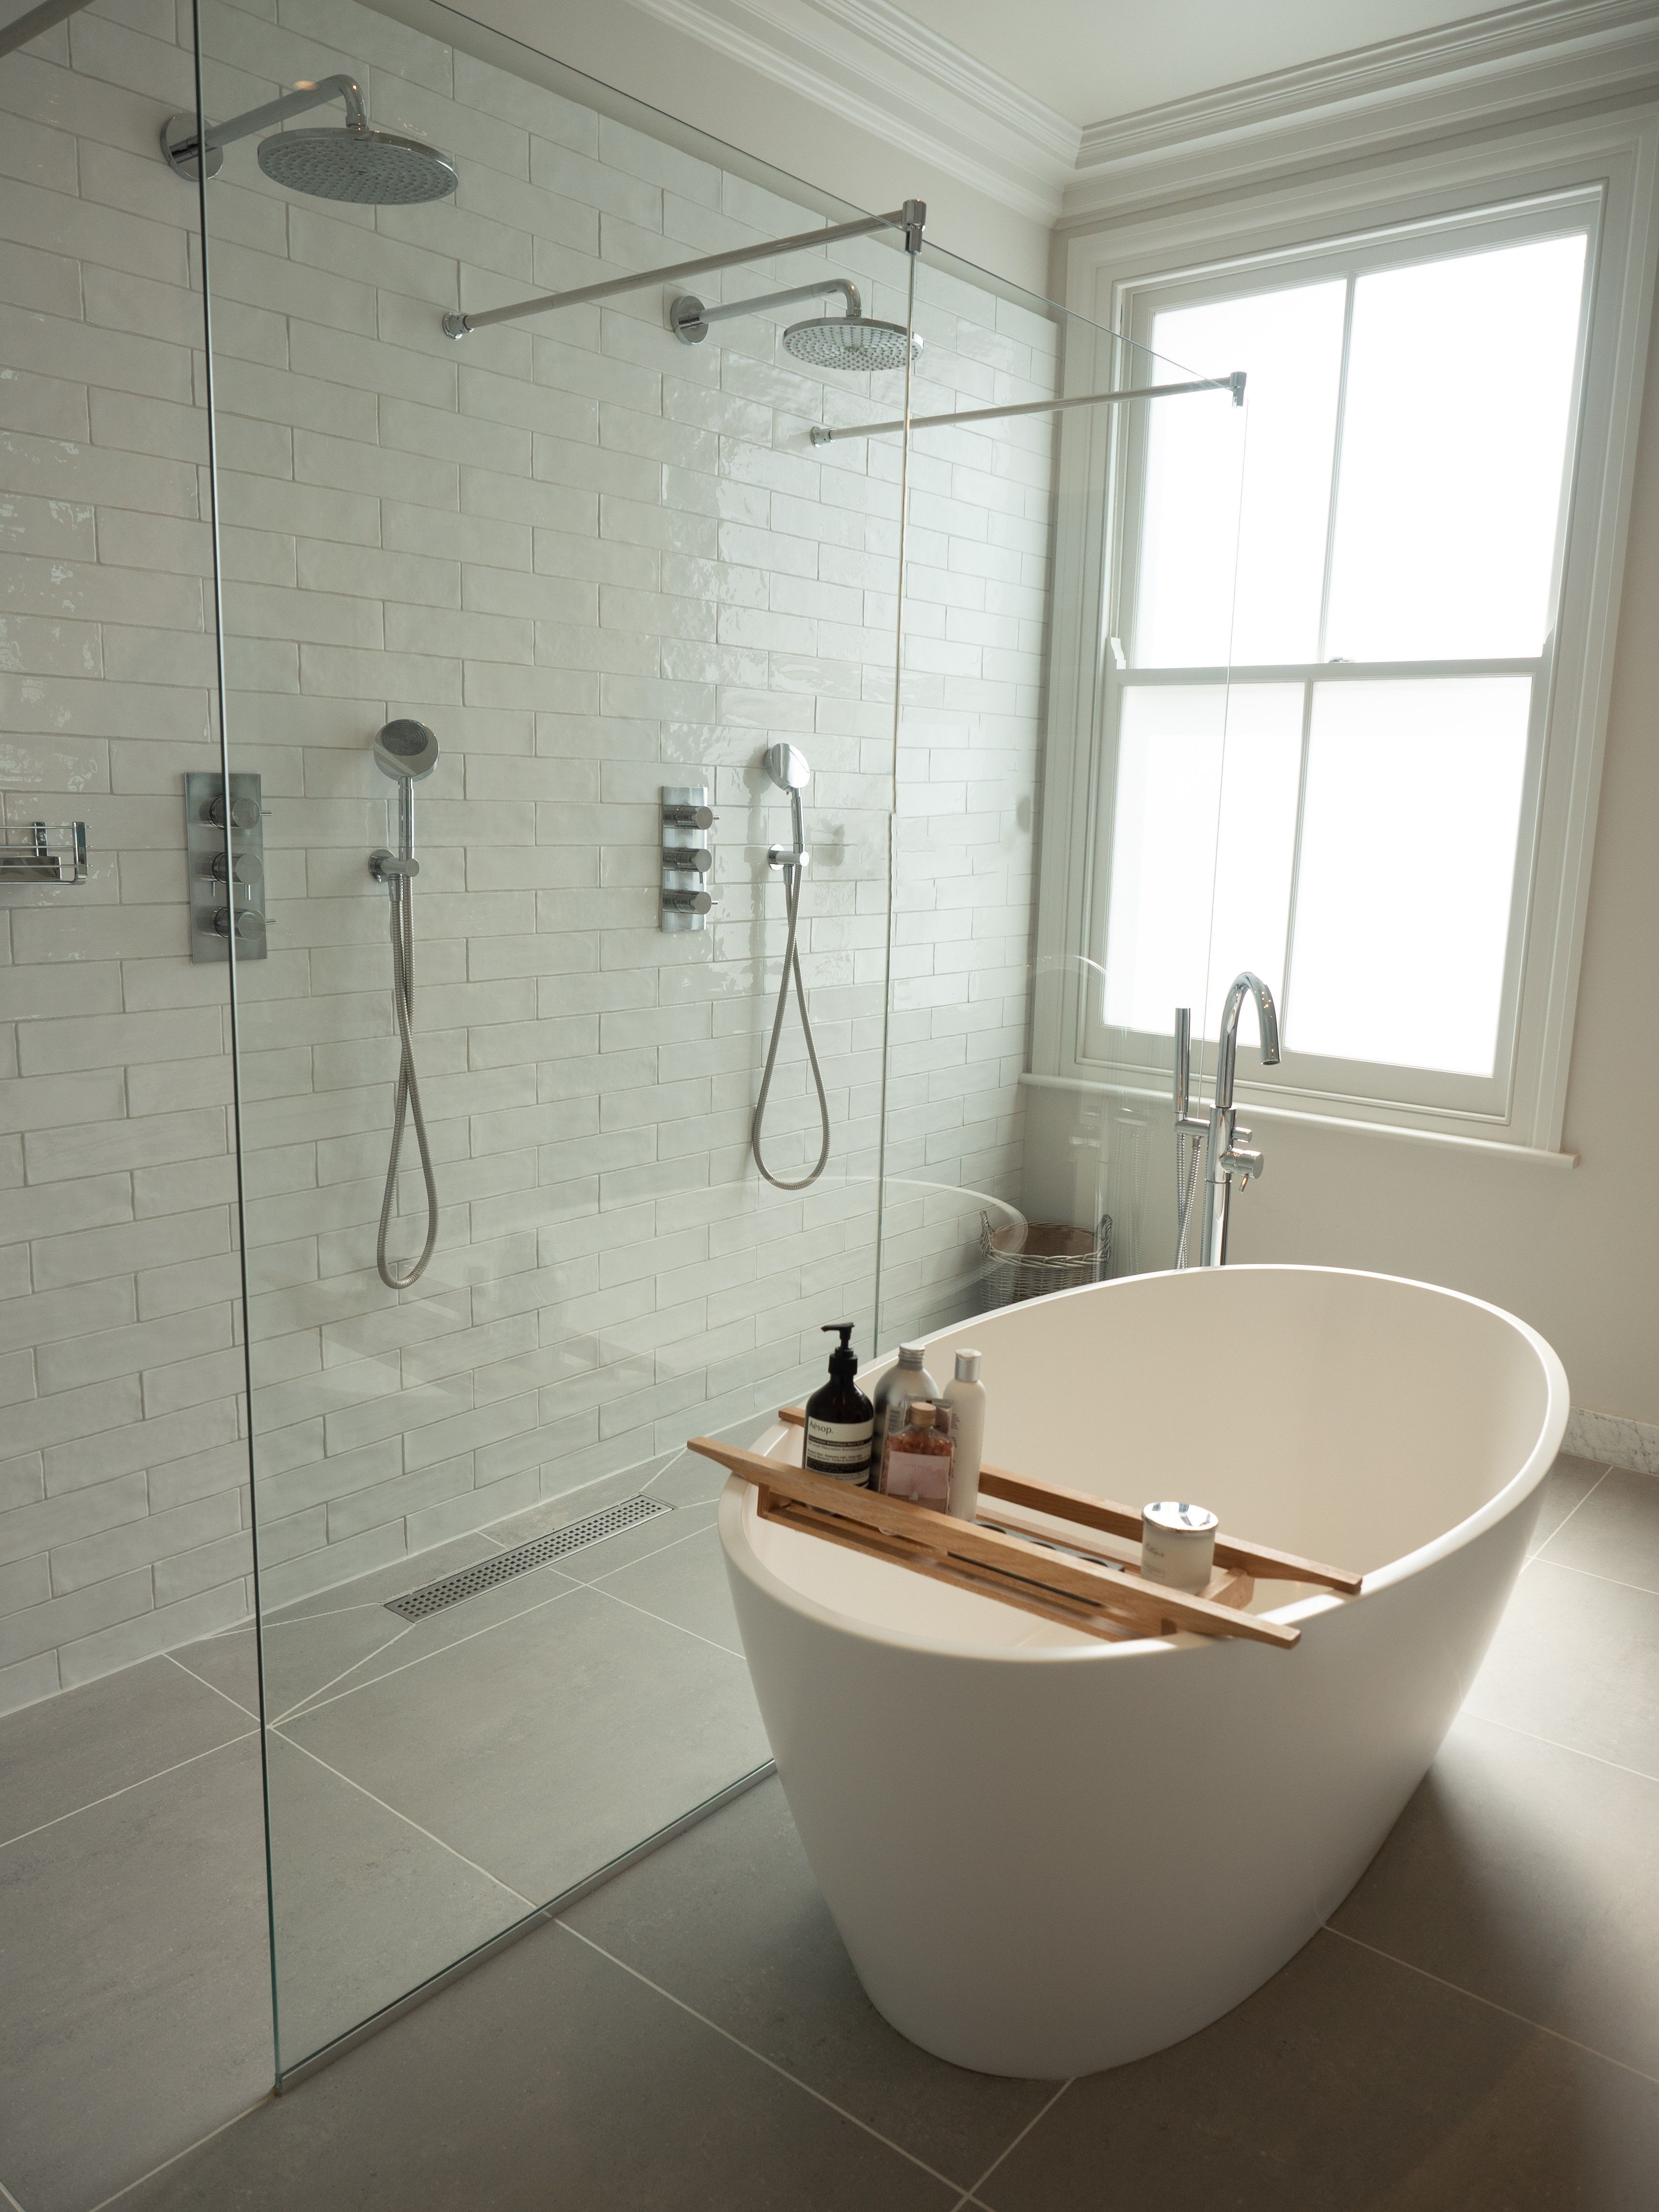 Pin by loop on bathroom ideas prelude to a bath pinterest